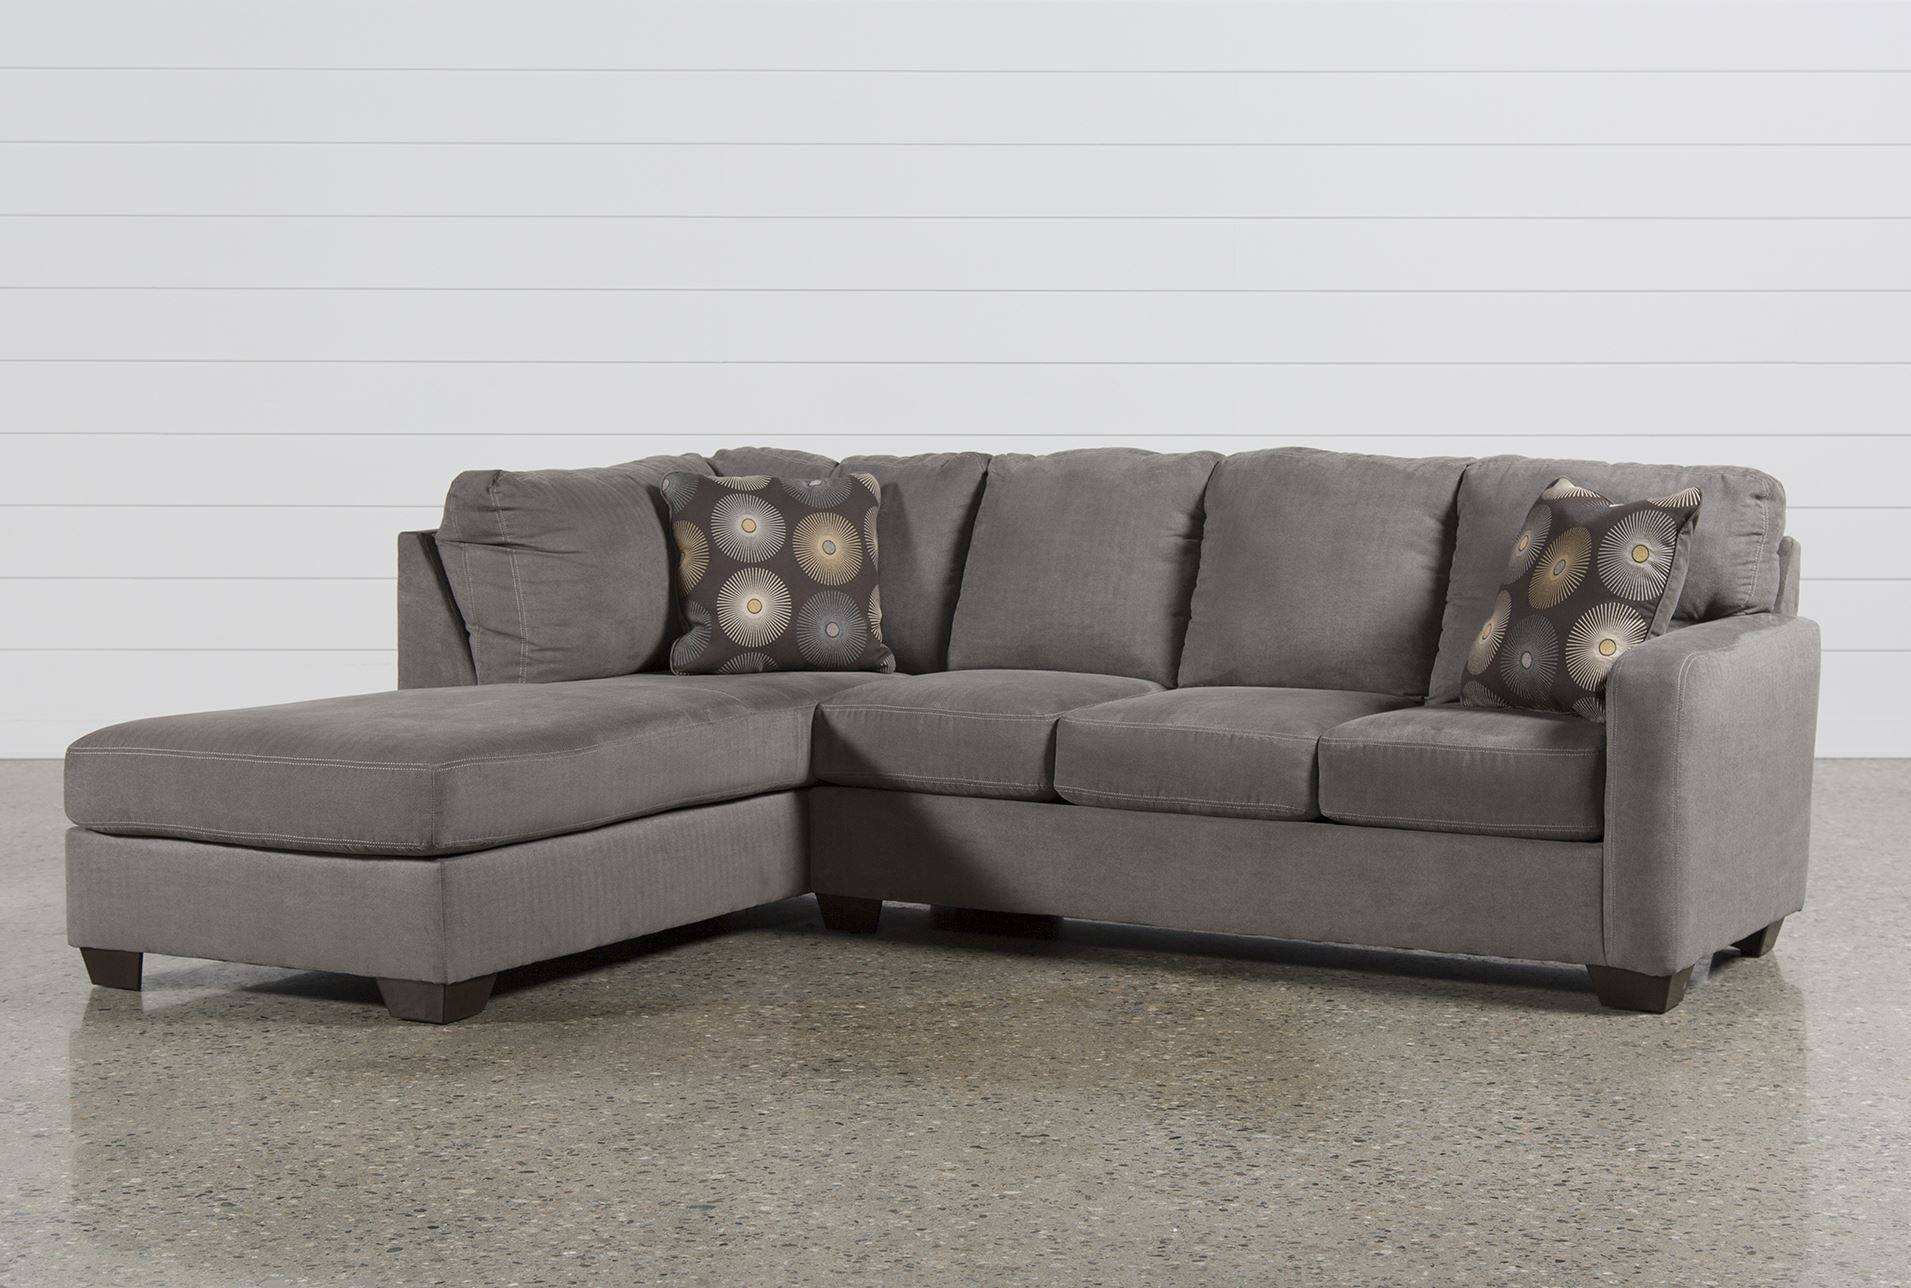 Furniture: Modern Chaise Sectional With Classic Comfortable Design within Green Sectional Sofa With Chaise (Image 8 of 30)